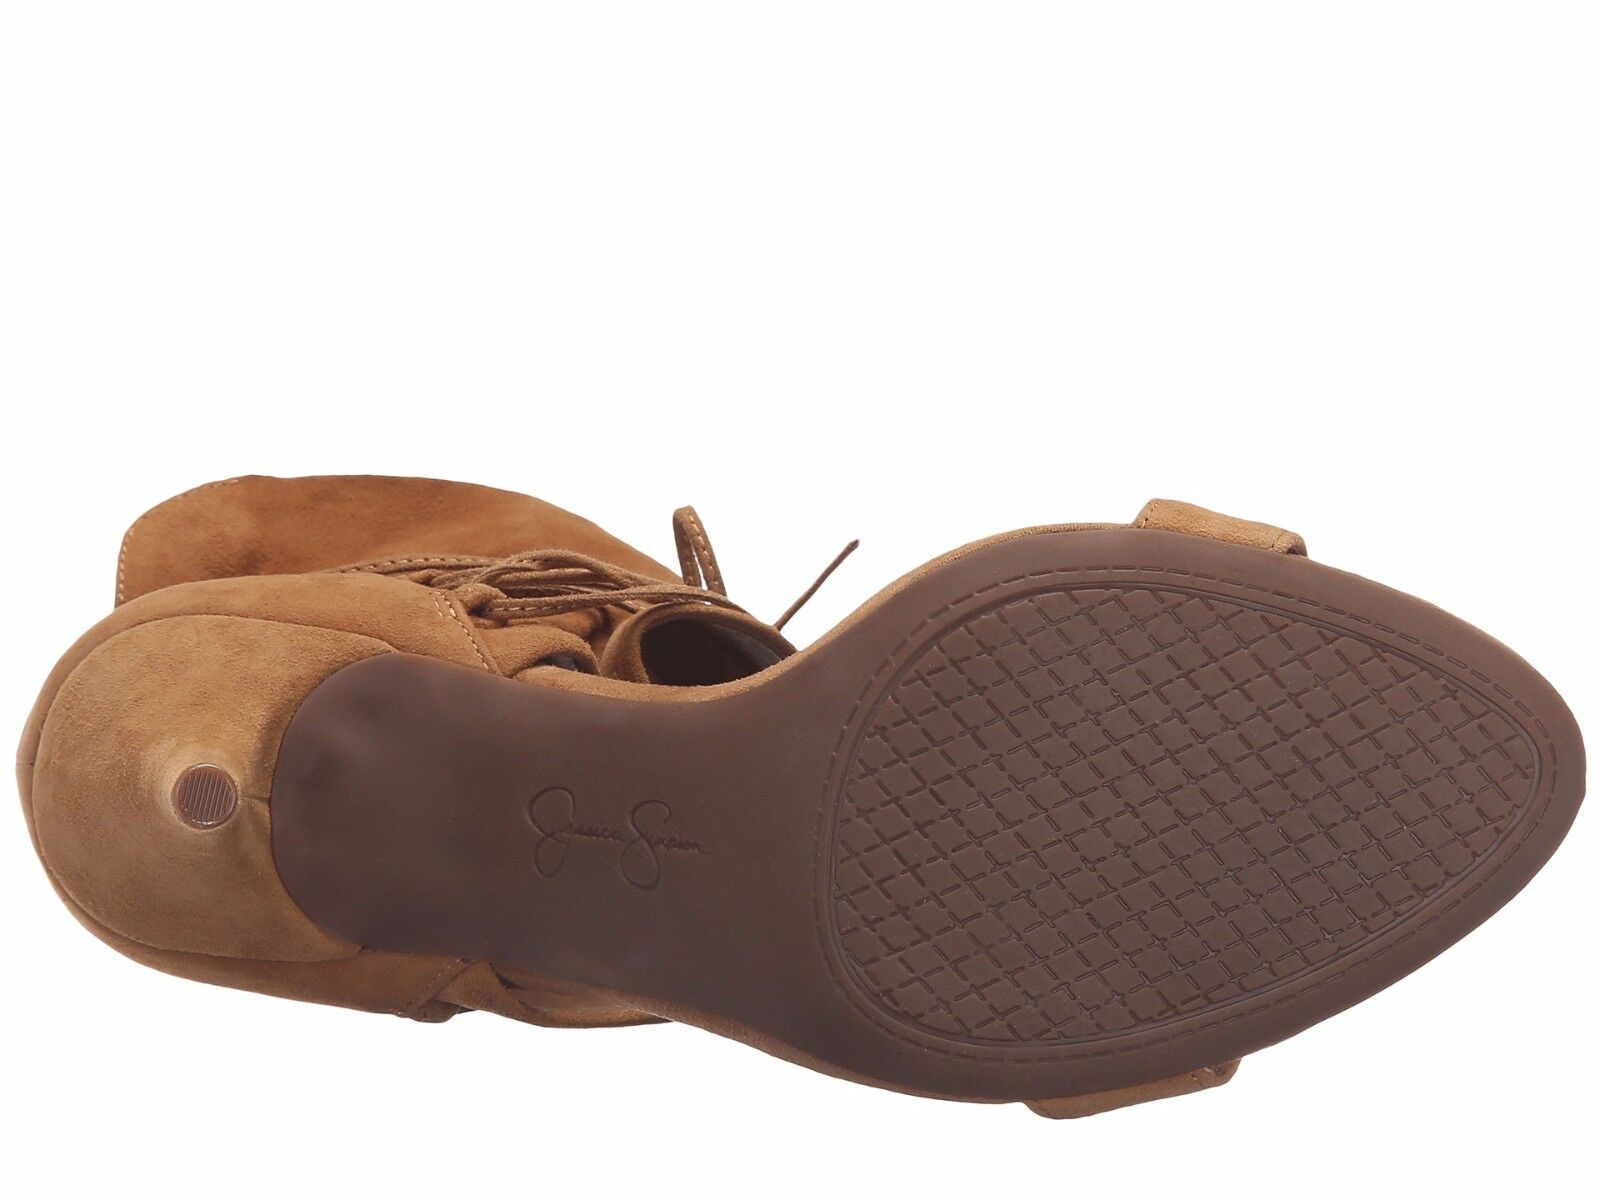 Women's Jessica Simpson Madeena Lace-Up Pumps, Sizes 5.5-7.5 5.5-7.5 5.5-7.5 Honey Brown Suede a85d73